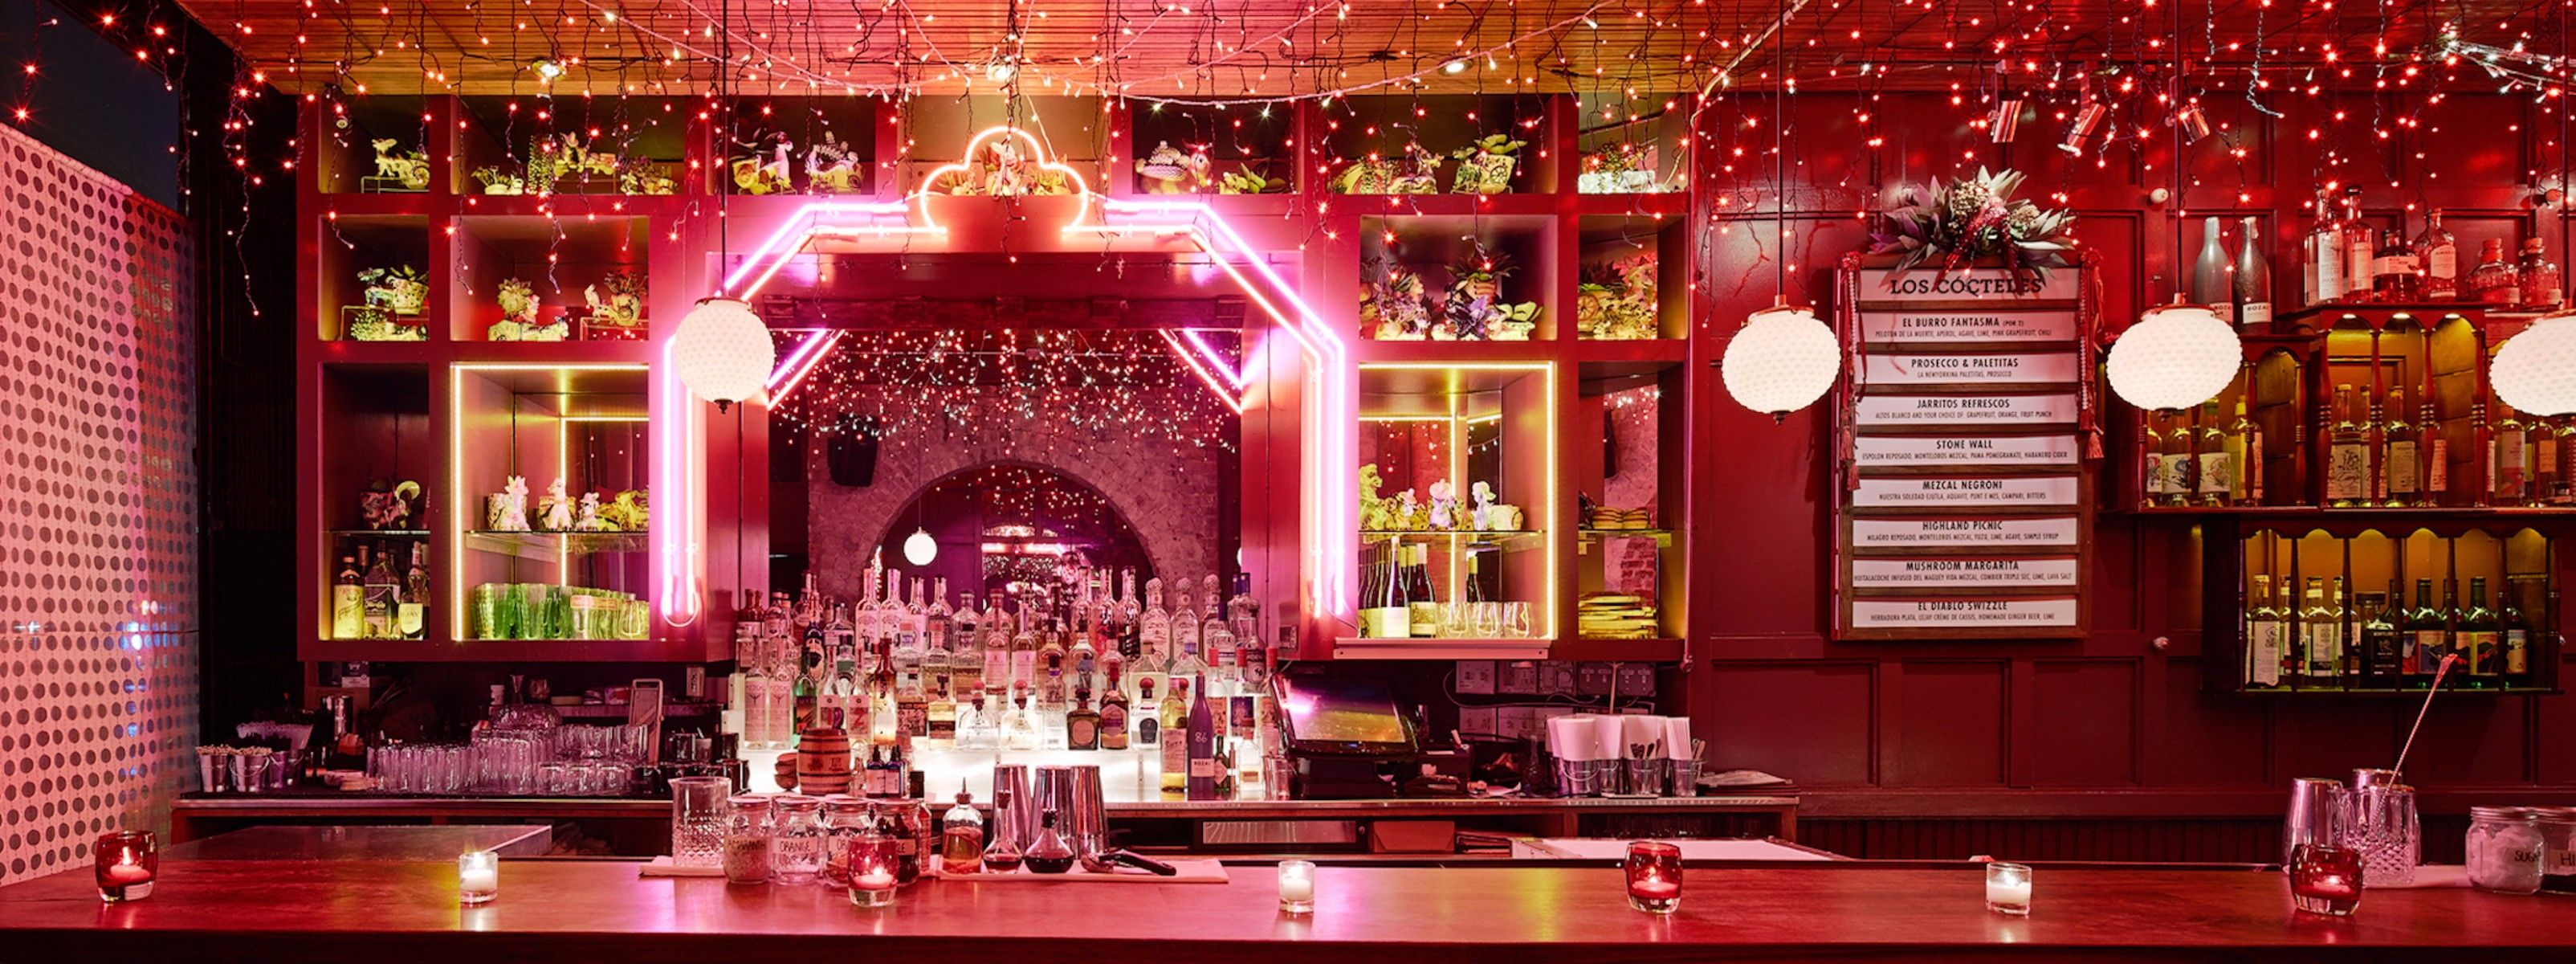 The Best Nyc Bars For Your Birthday New York The Infatuation Nyc Bars Birthday Bar Best Bars In Nyc